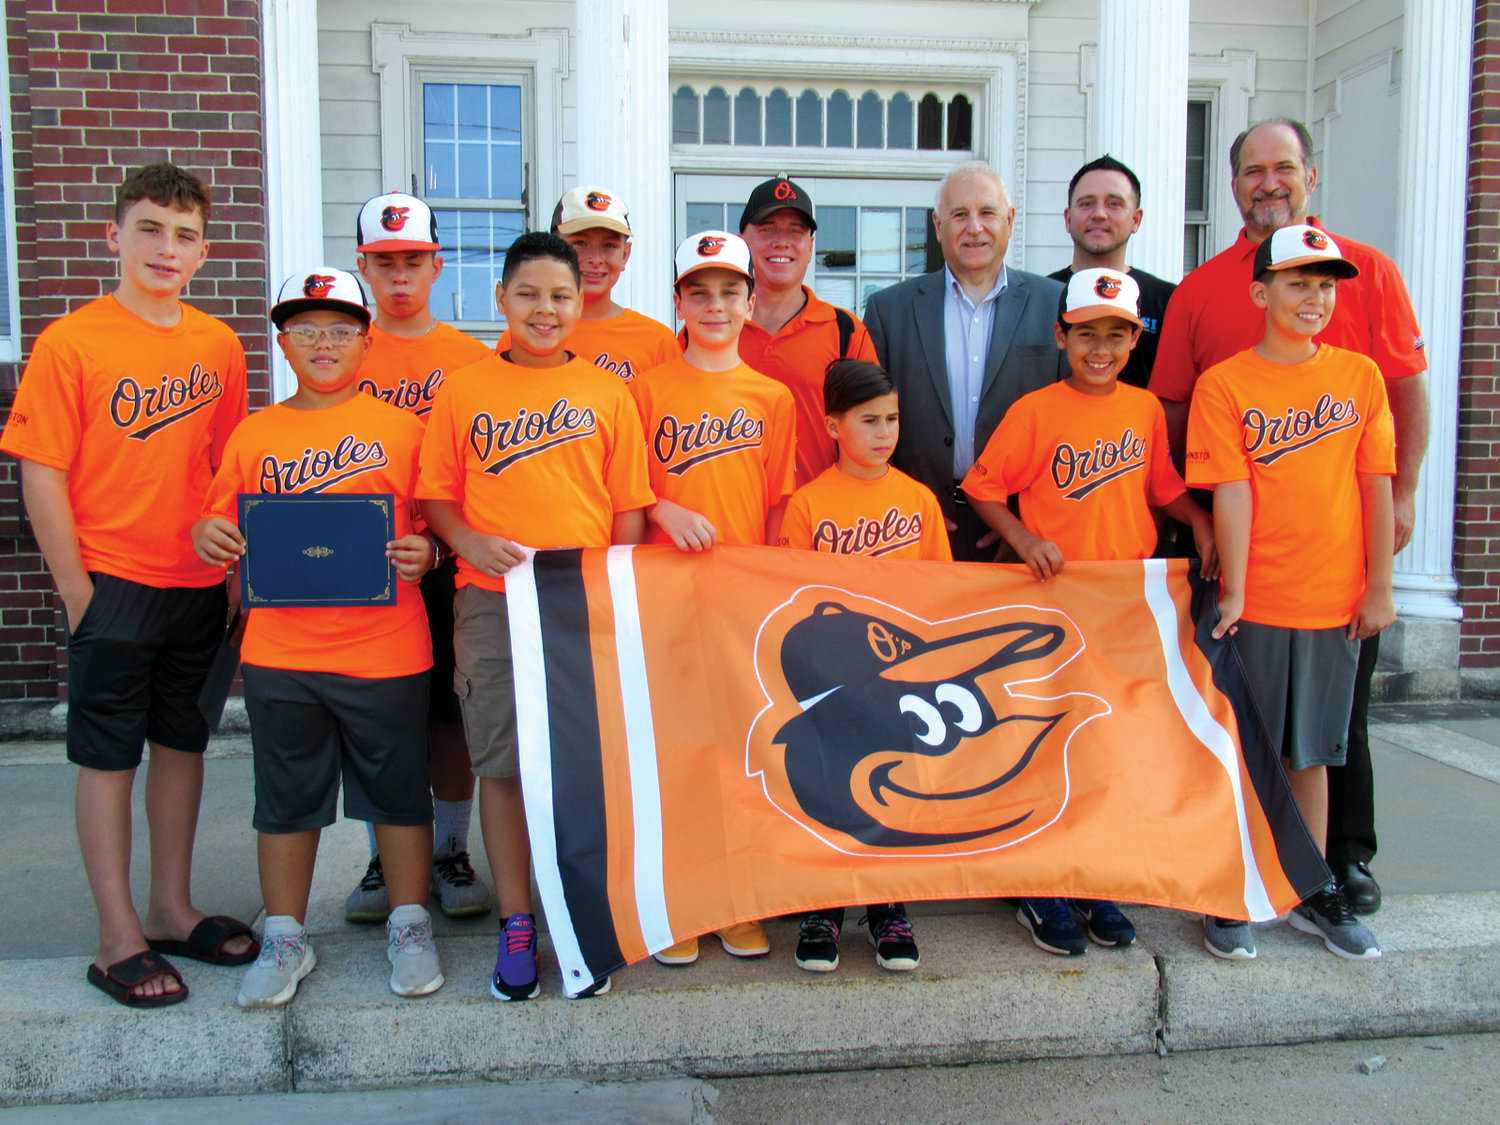 BIRD'S BANNER: Members of the Lisi Construction/Lions Club sponsored squad that recently staked claim to the Johnston Little League's prestigious 2019 Town Championship, proudly display their banner on the steps of Town Hall during Monday's special ceremony hosted by Mayor Joseph Polisena.